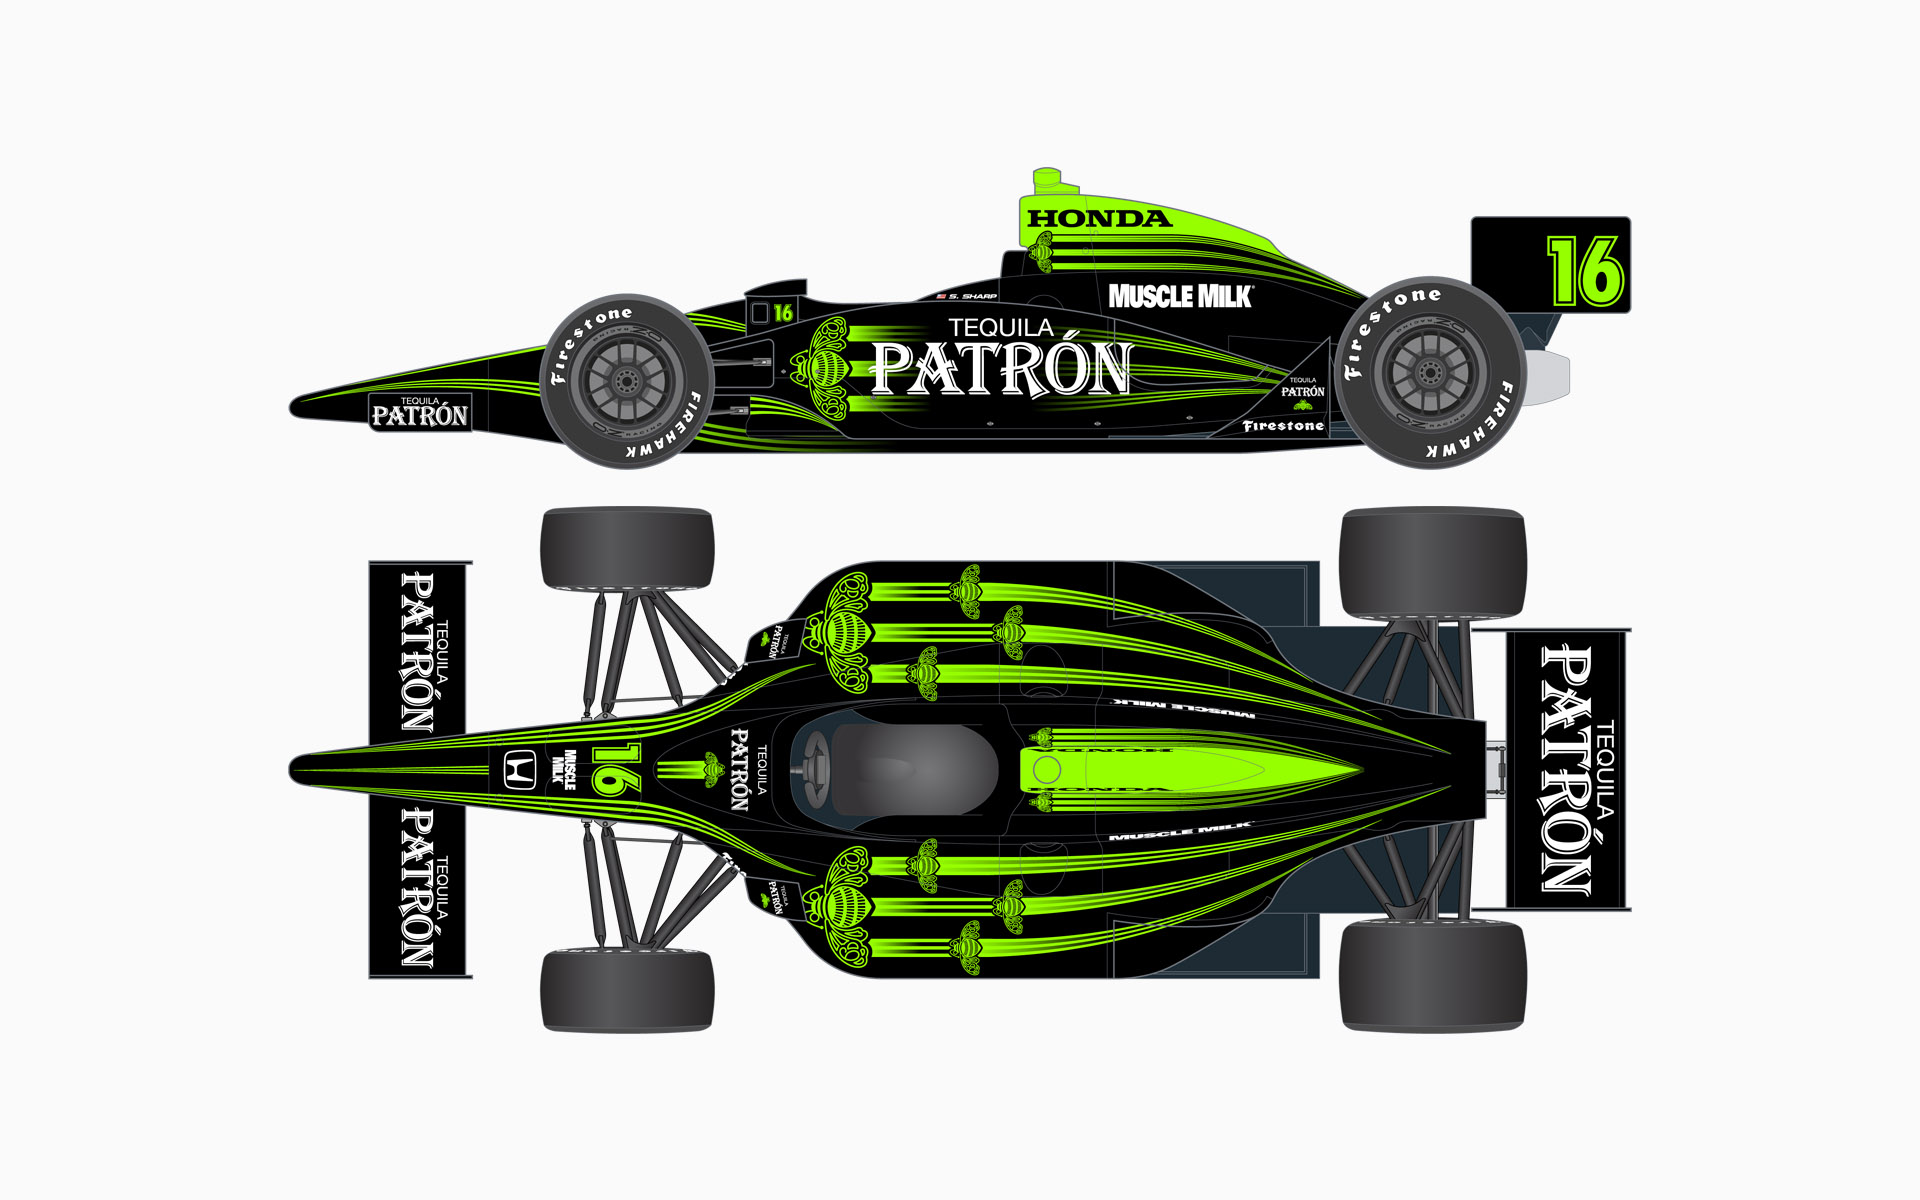 2009 Pátron Indy Racing Dallara Honda IndyCar Livery Elevations